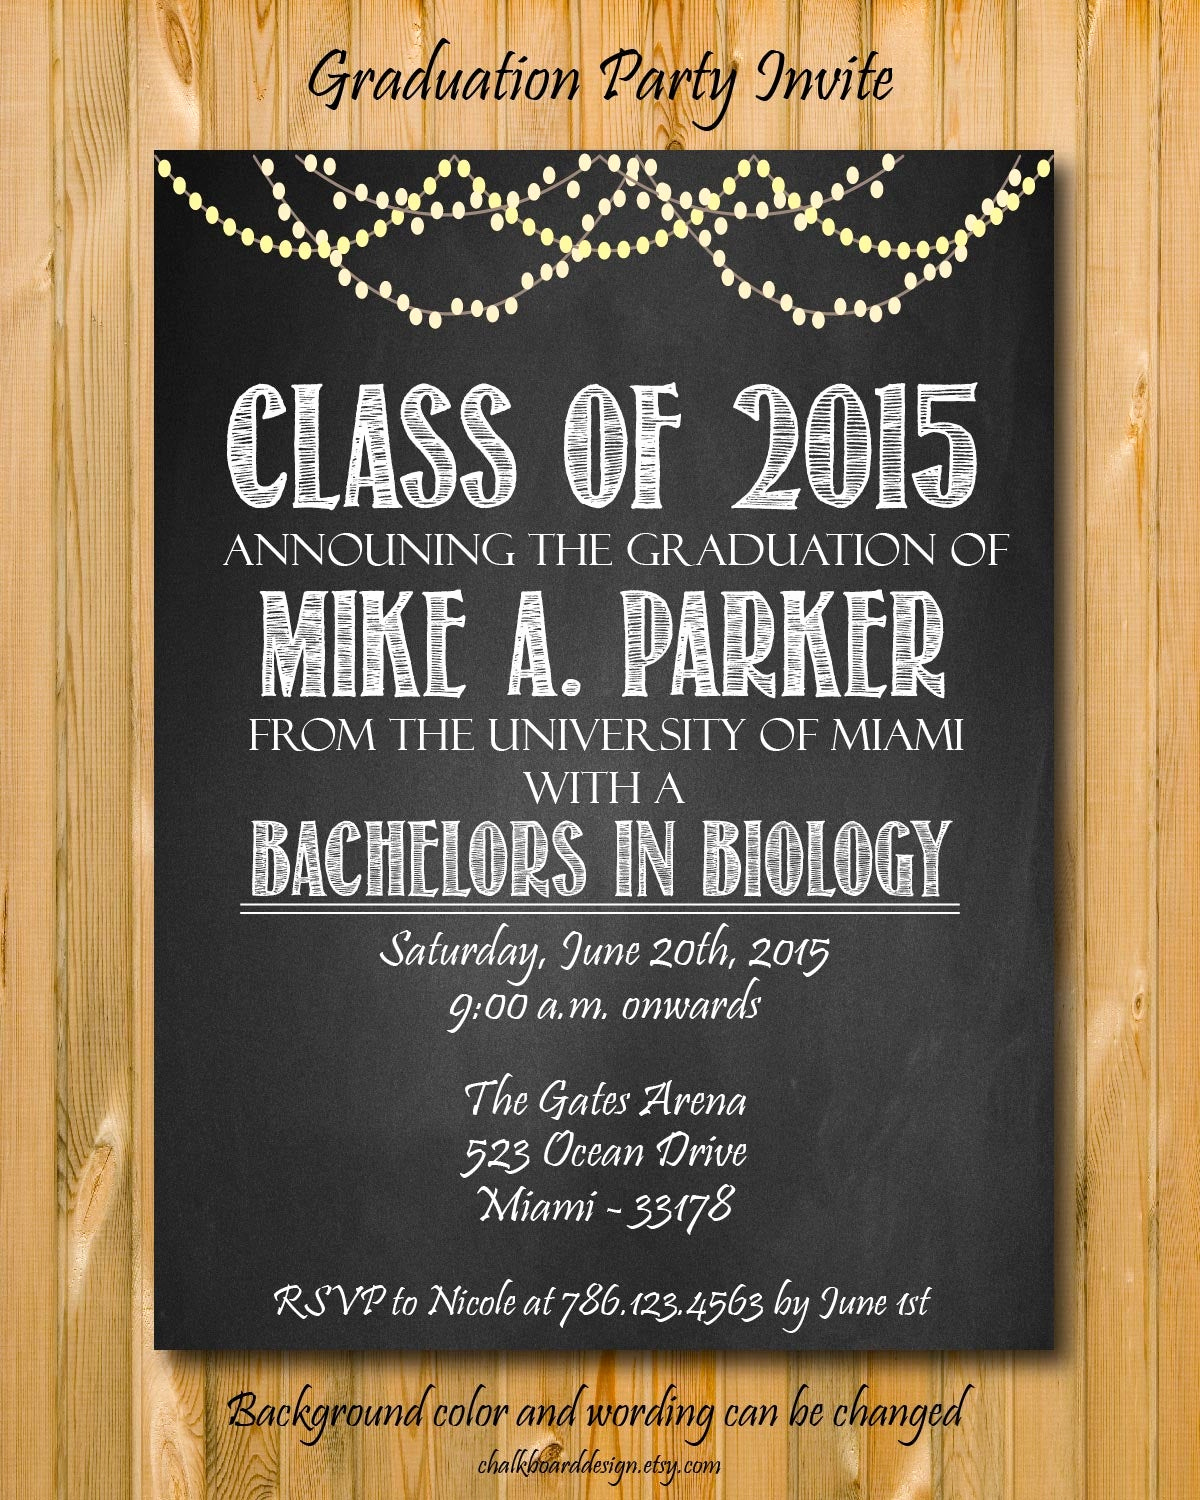 Graduation Announcement and Party Invitation Fresh Graduation Invitation College Graduation Announcement